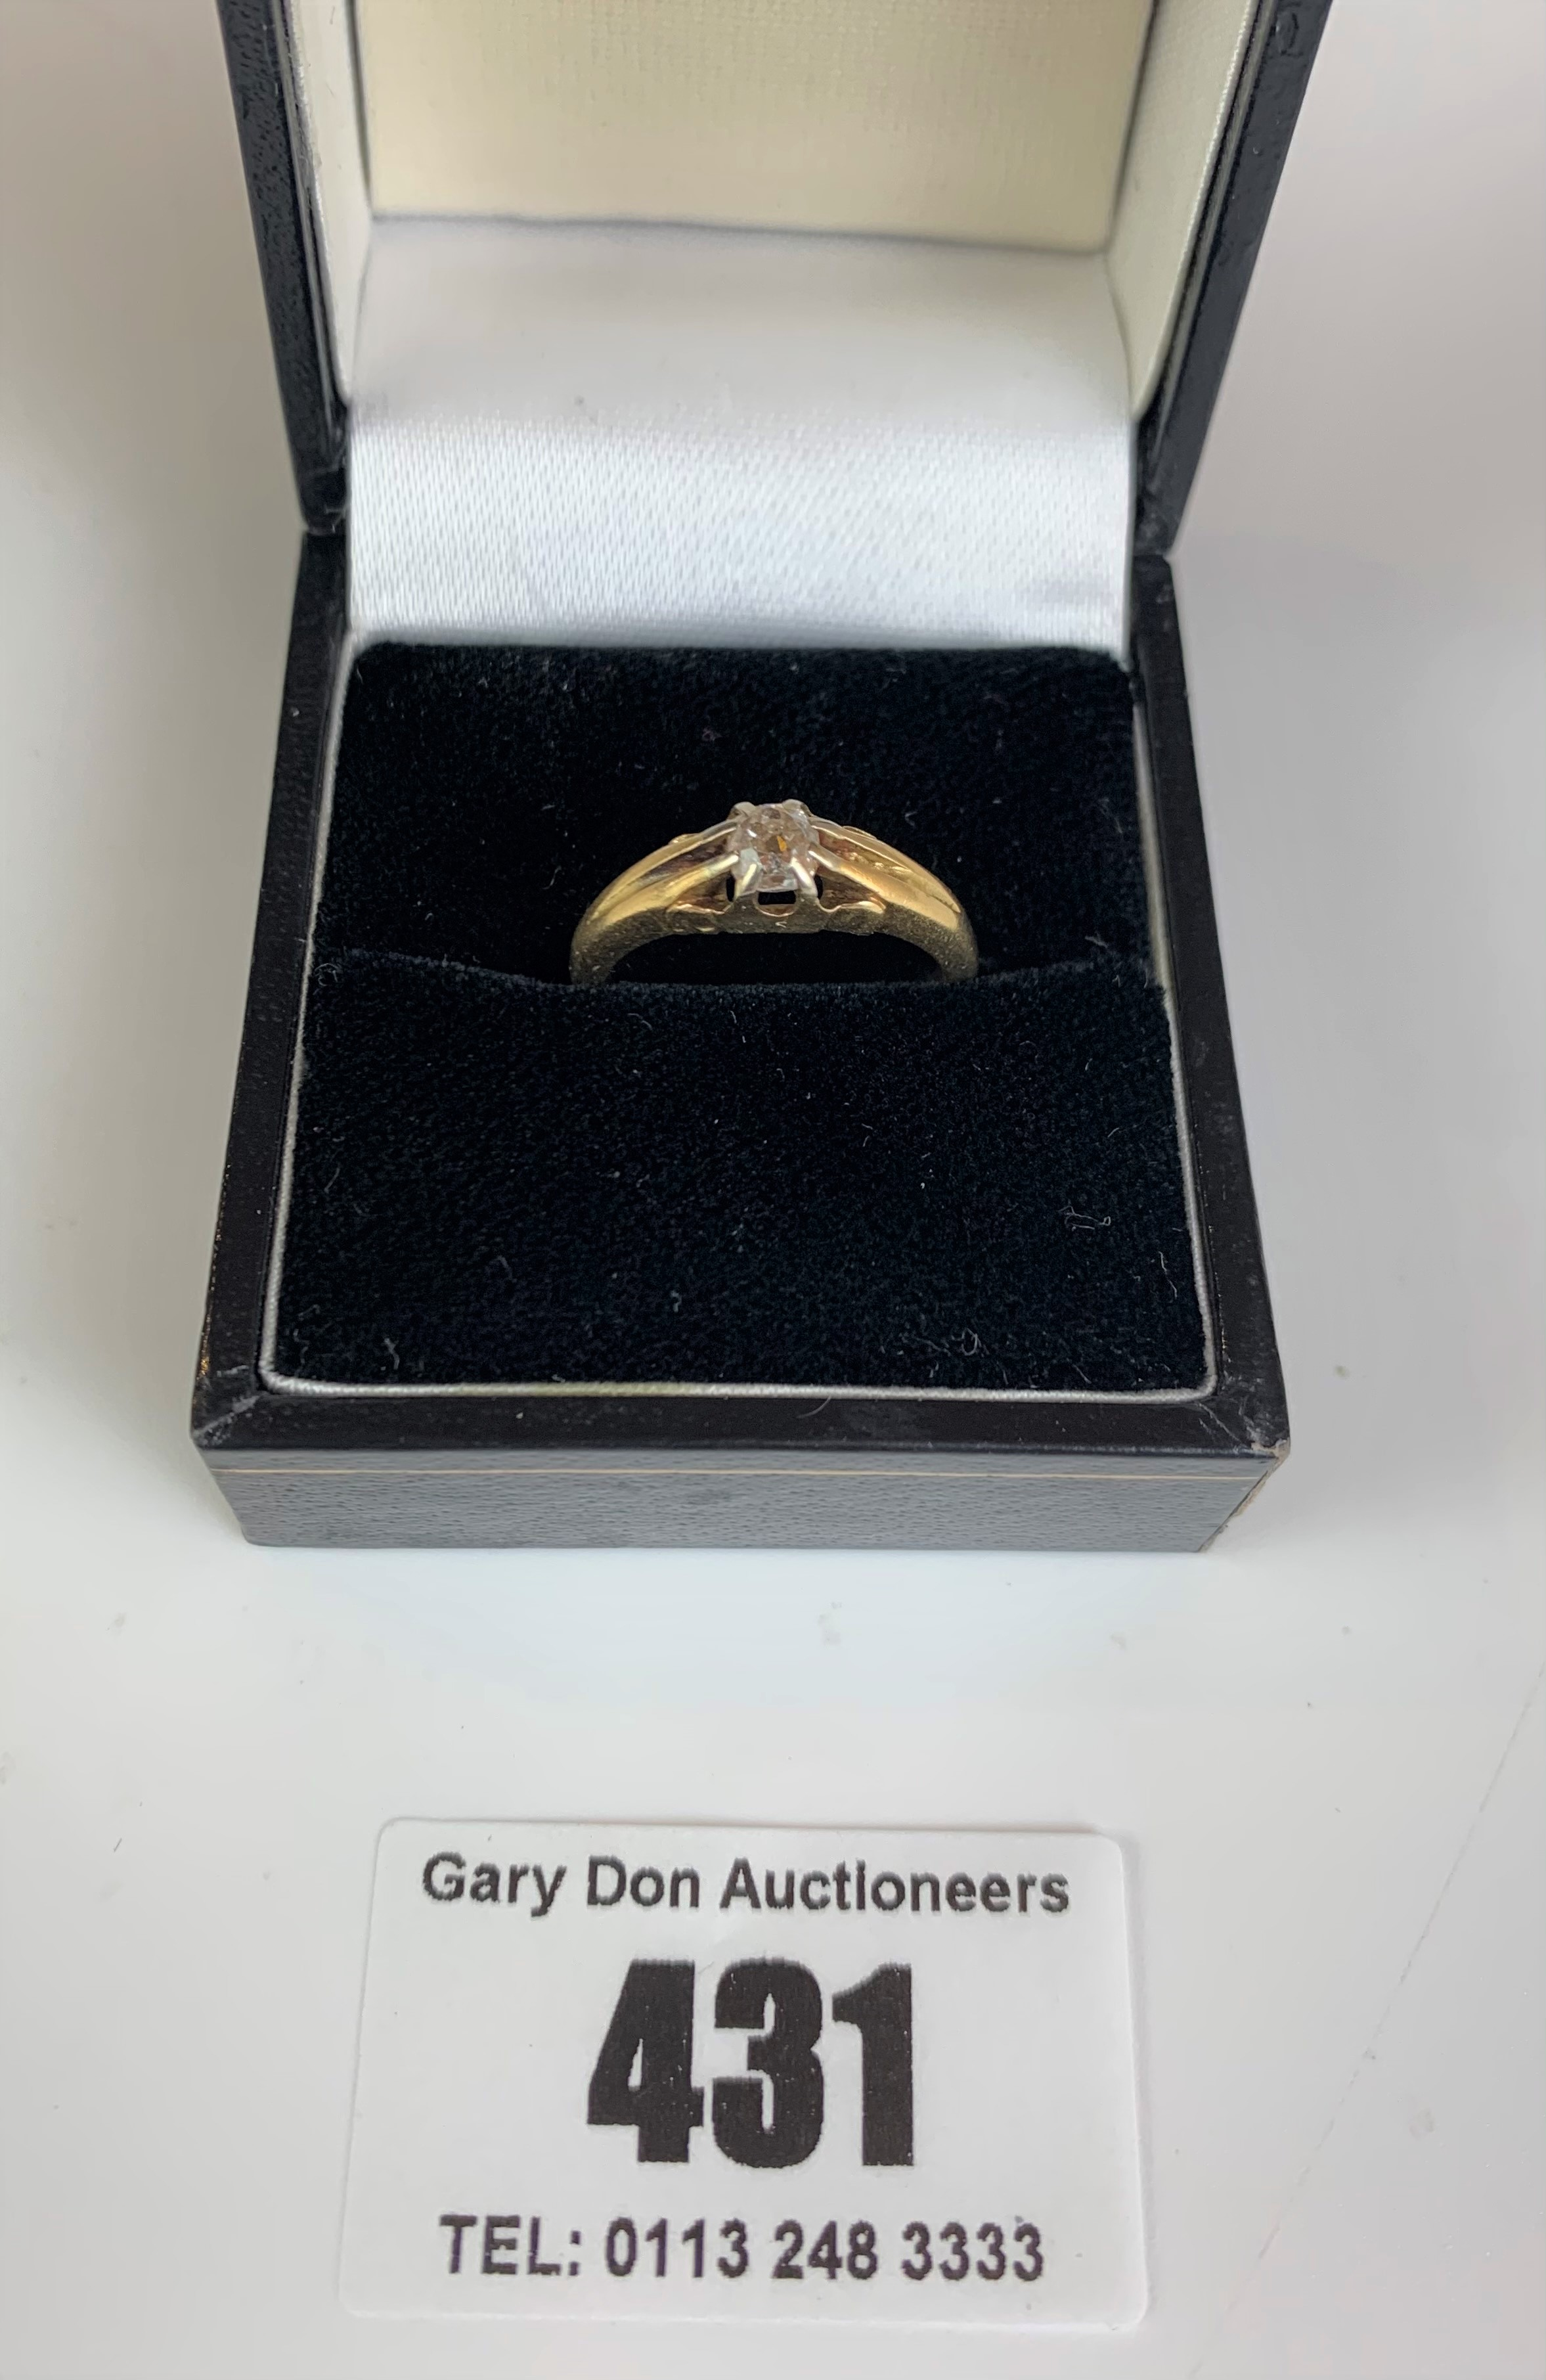 18k gold and diamond solitaire ring, size K, w: 4.1 gms - Image 3 of 5